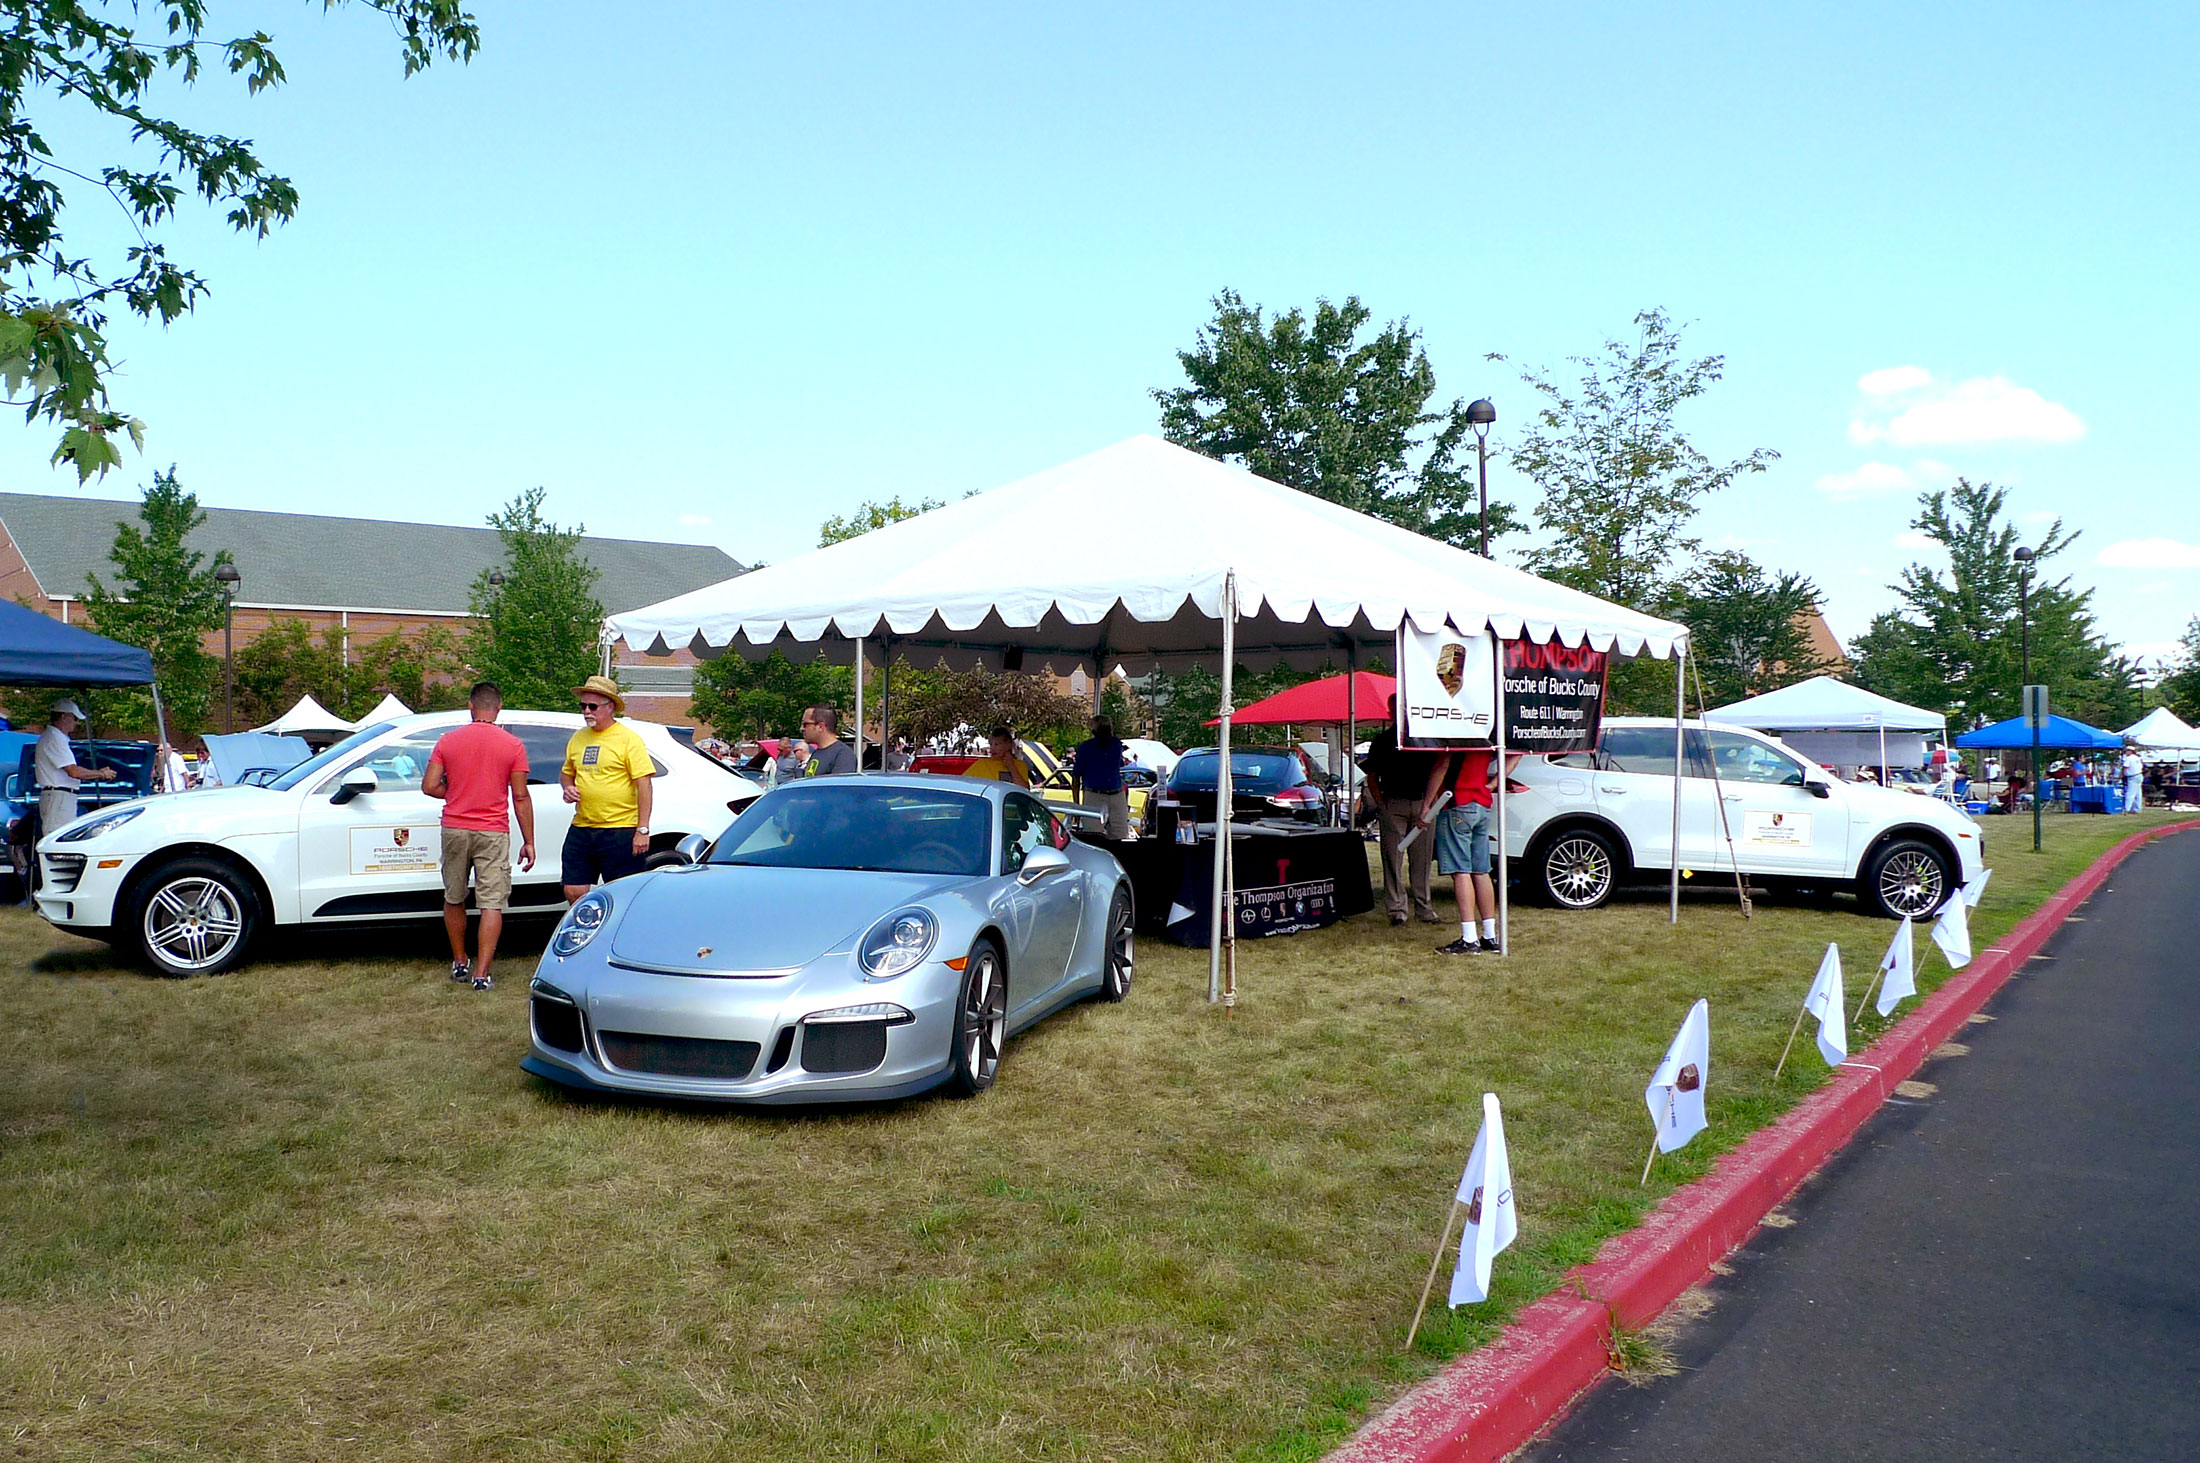 New Hope Automobile Show | America\'s favorite auto show since 1957.